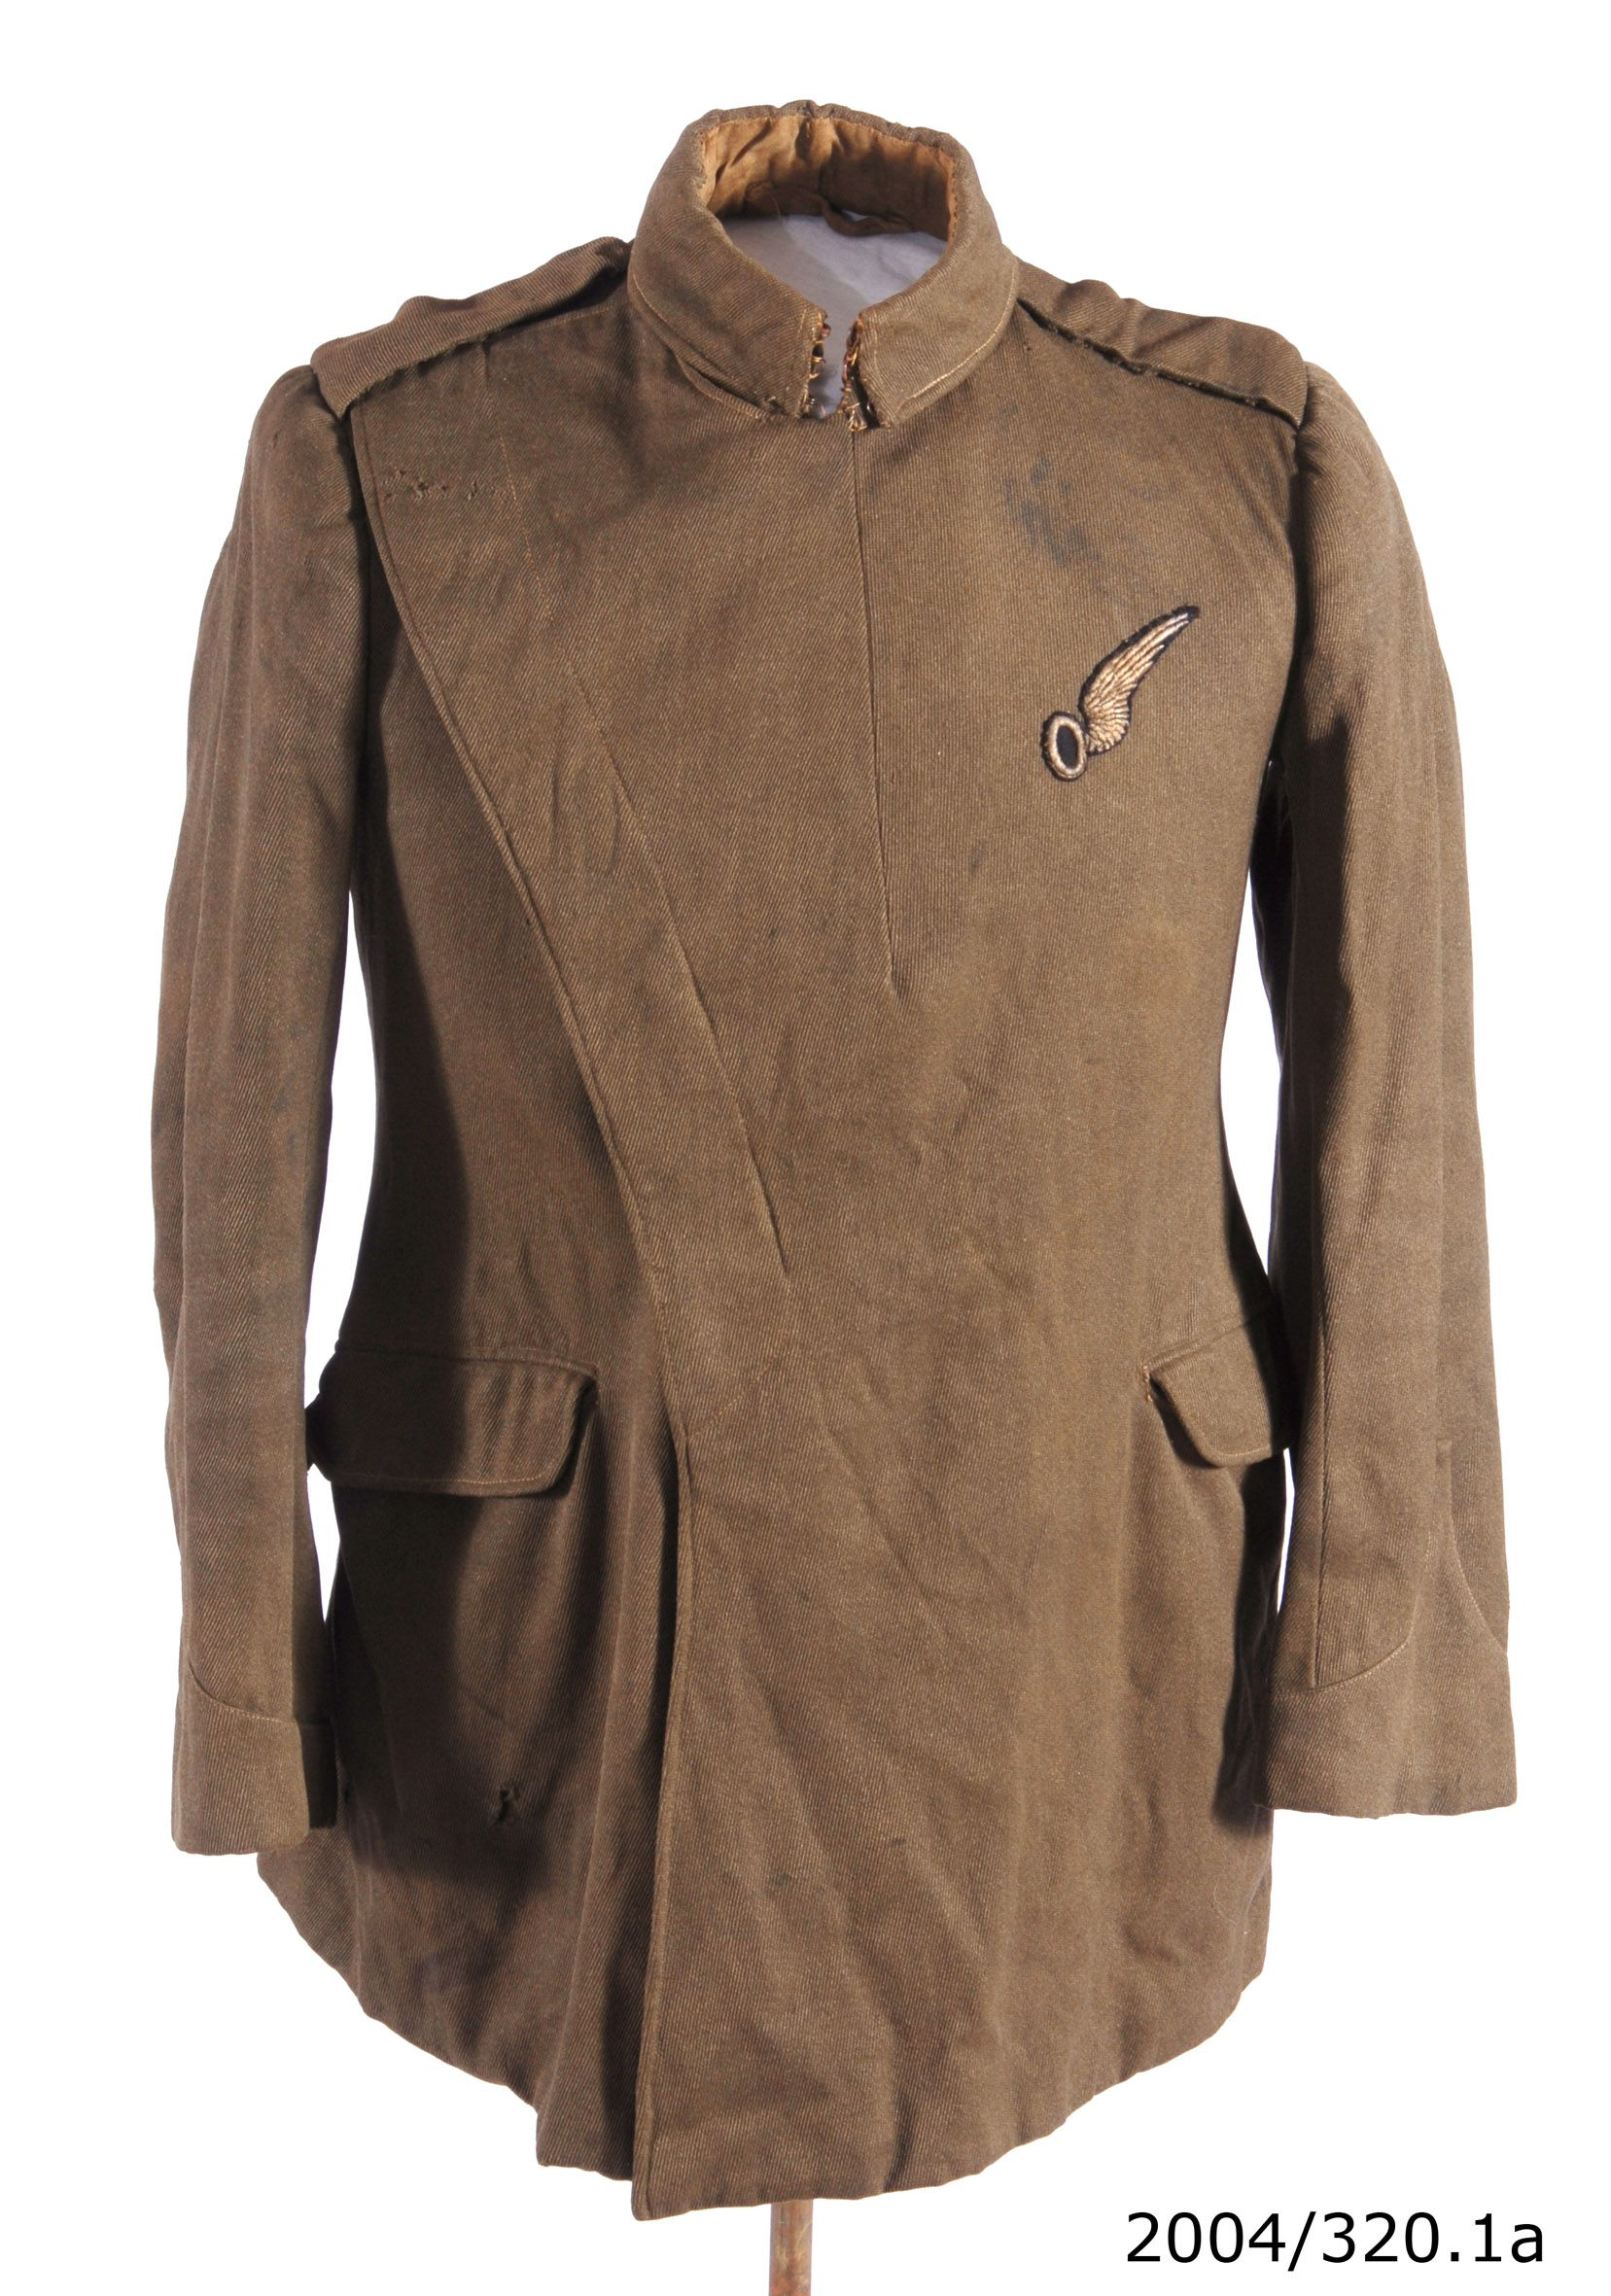 Royal Flying Corps 'Maternity' type field service dress